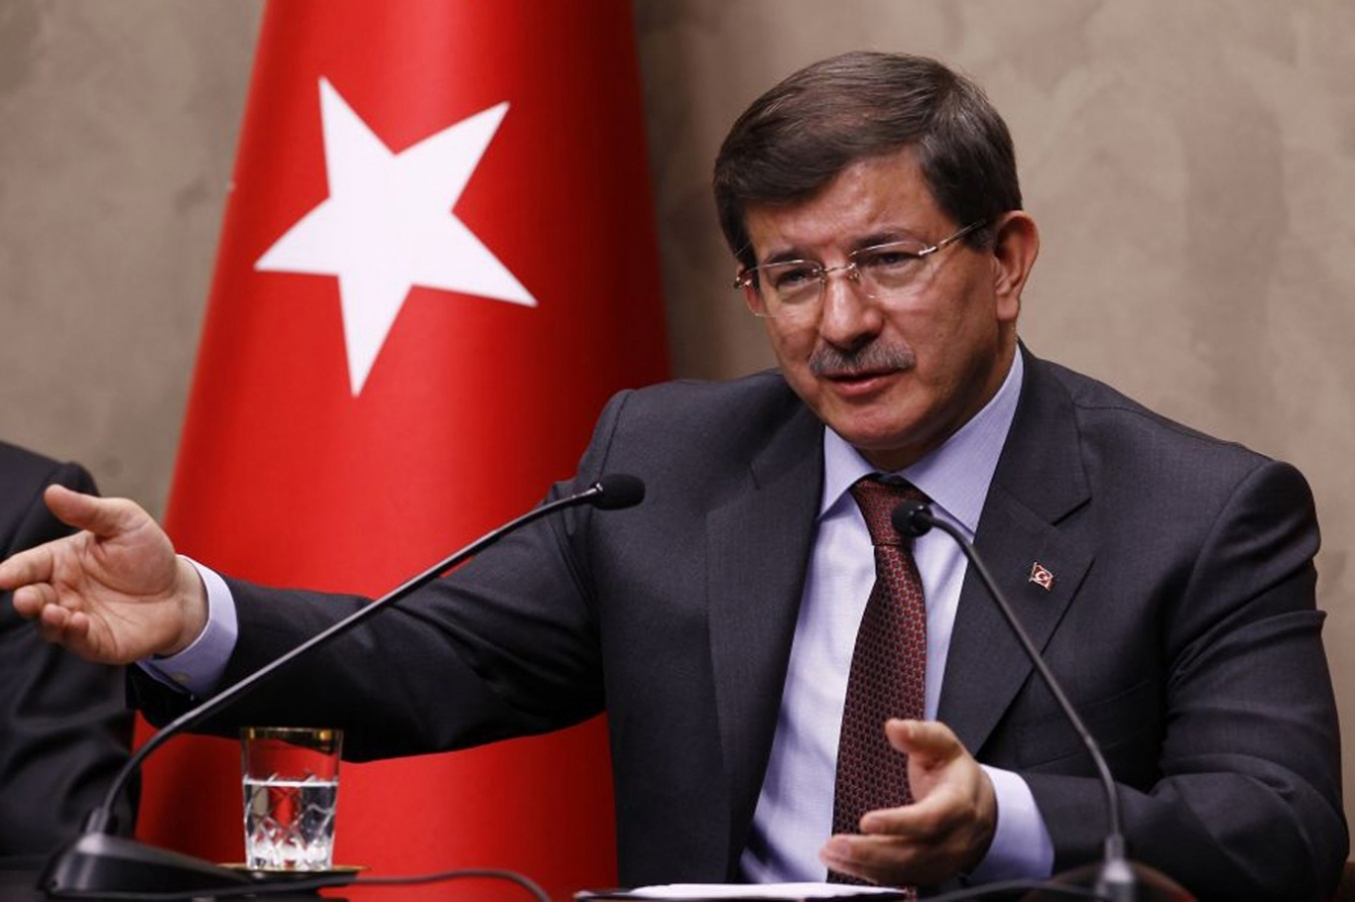 Davutoglu made explanations over bombing attack in Suruc